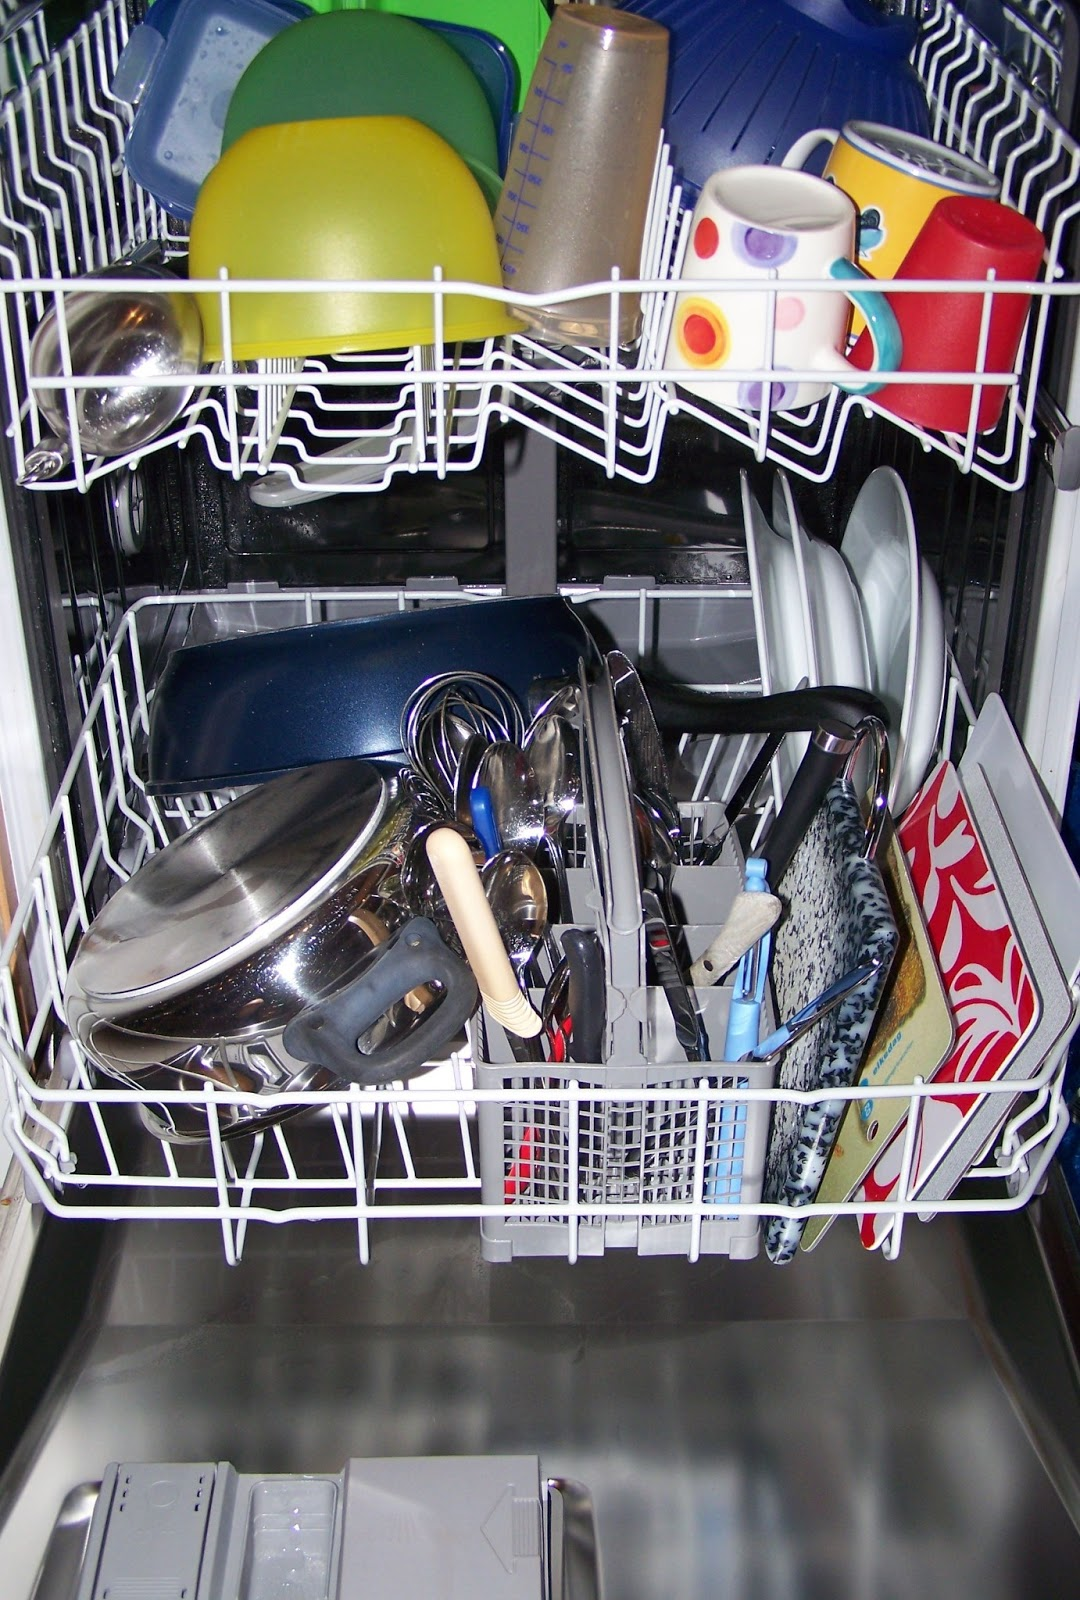 how to clean my dishwasher to make it clean better